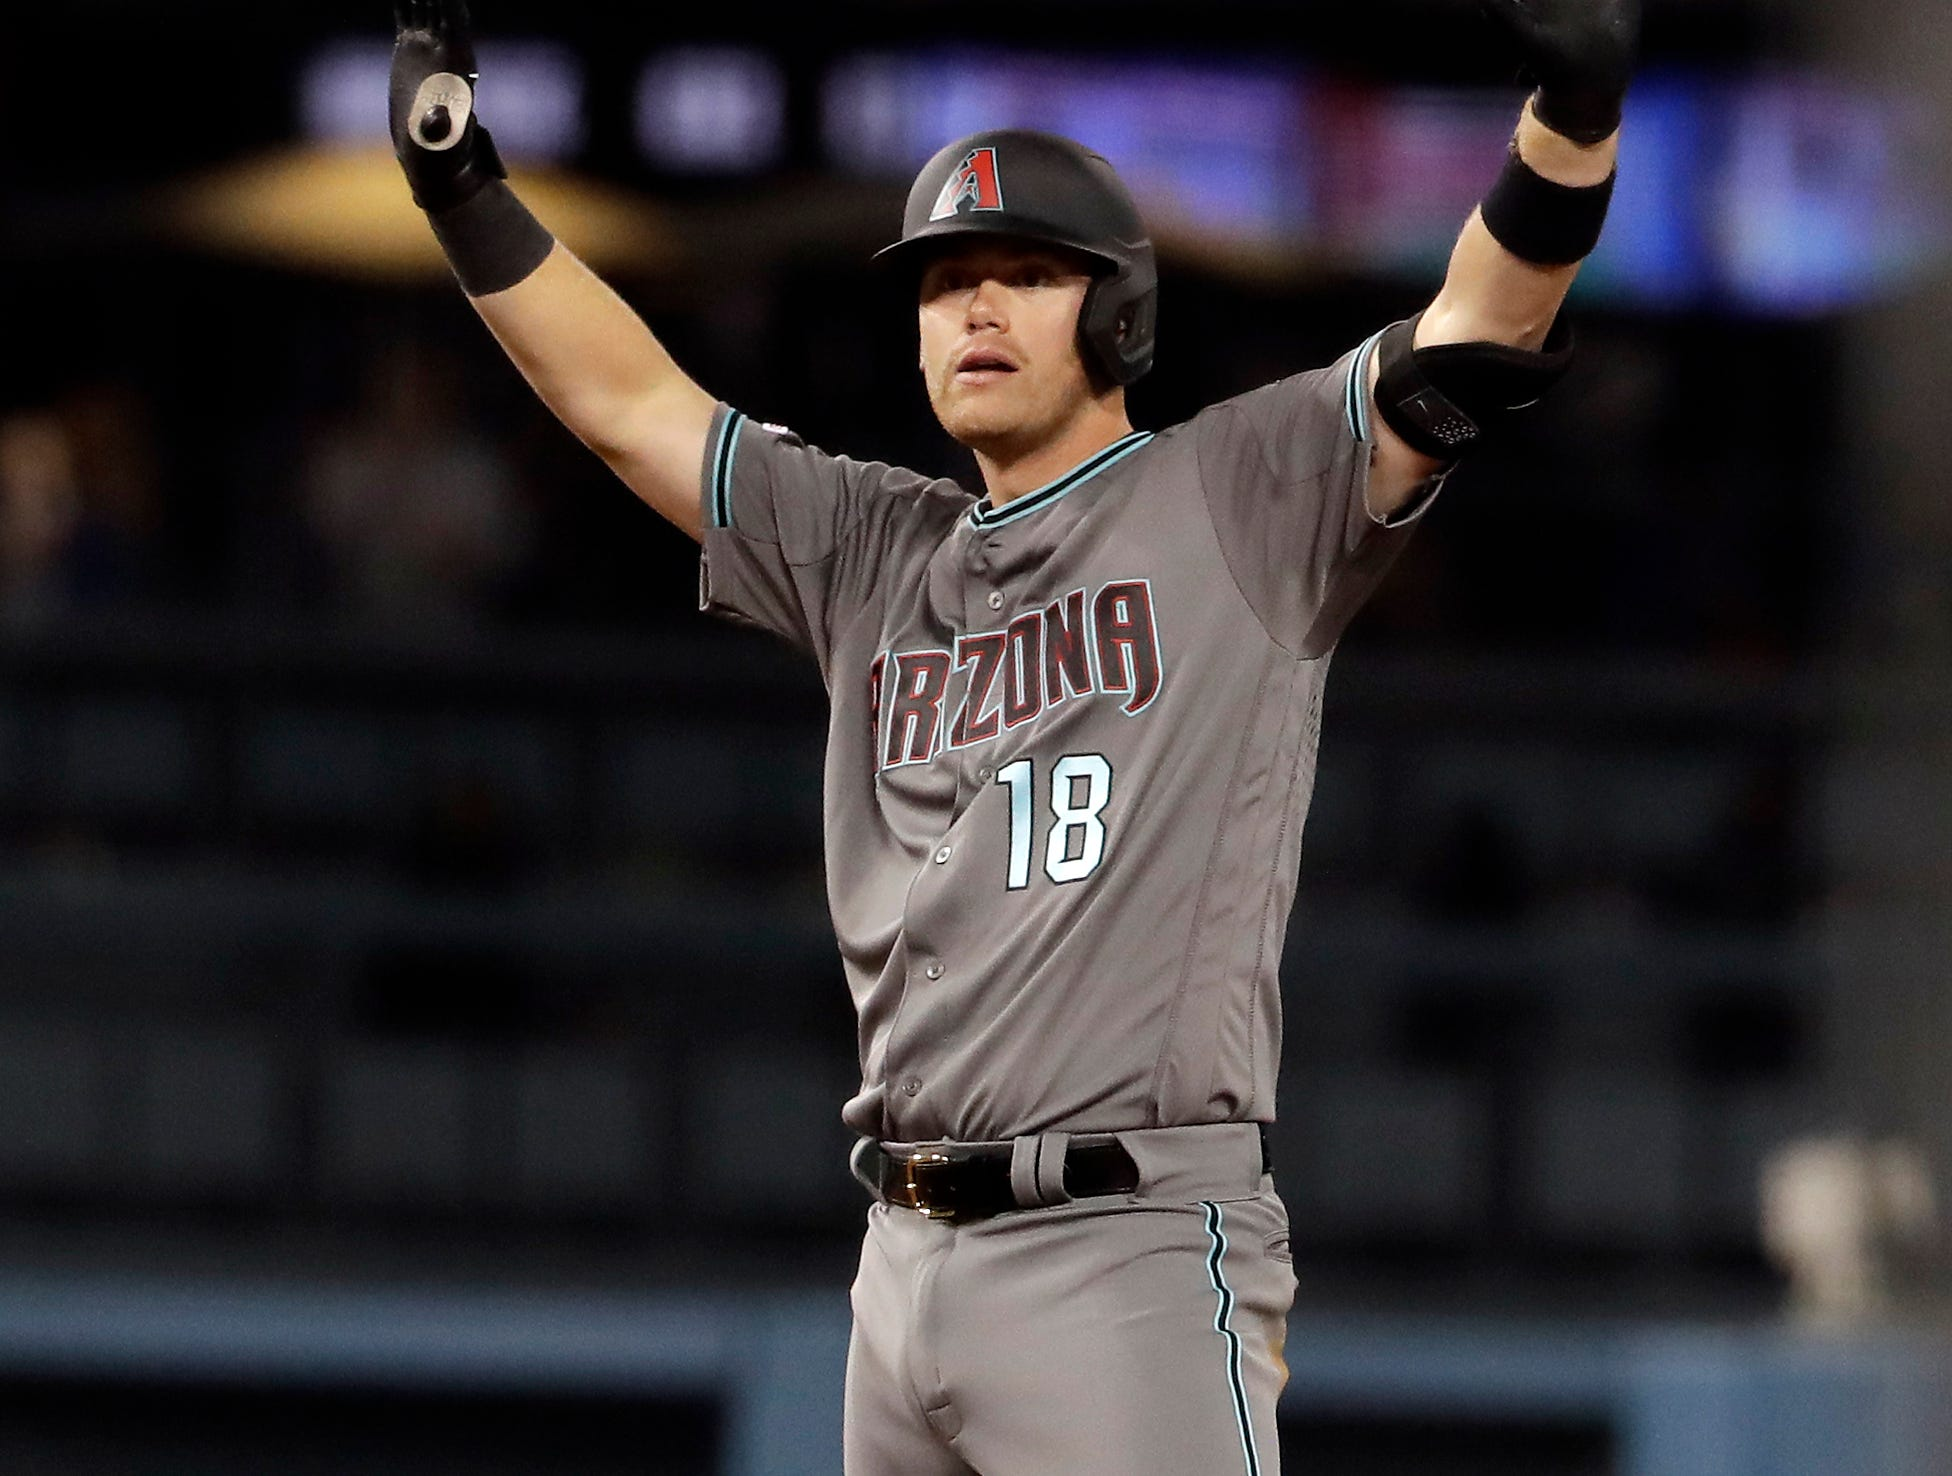 Arizona Diamondbacks' Carson Kelly celebrates after his RBI double during the 13th inning of a baseball game against the Los Angeles Dodgers Saturday, March 30, 2019, in Los Angeles. (AP Photo/Marcio Jose Sanchez)